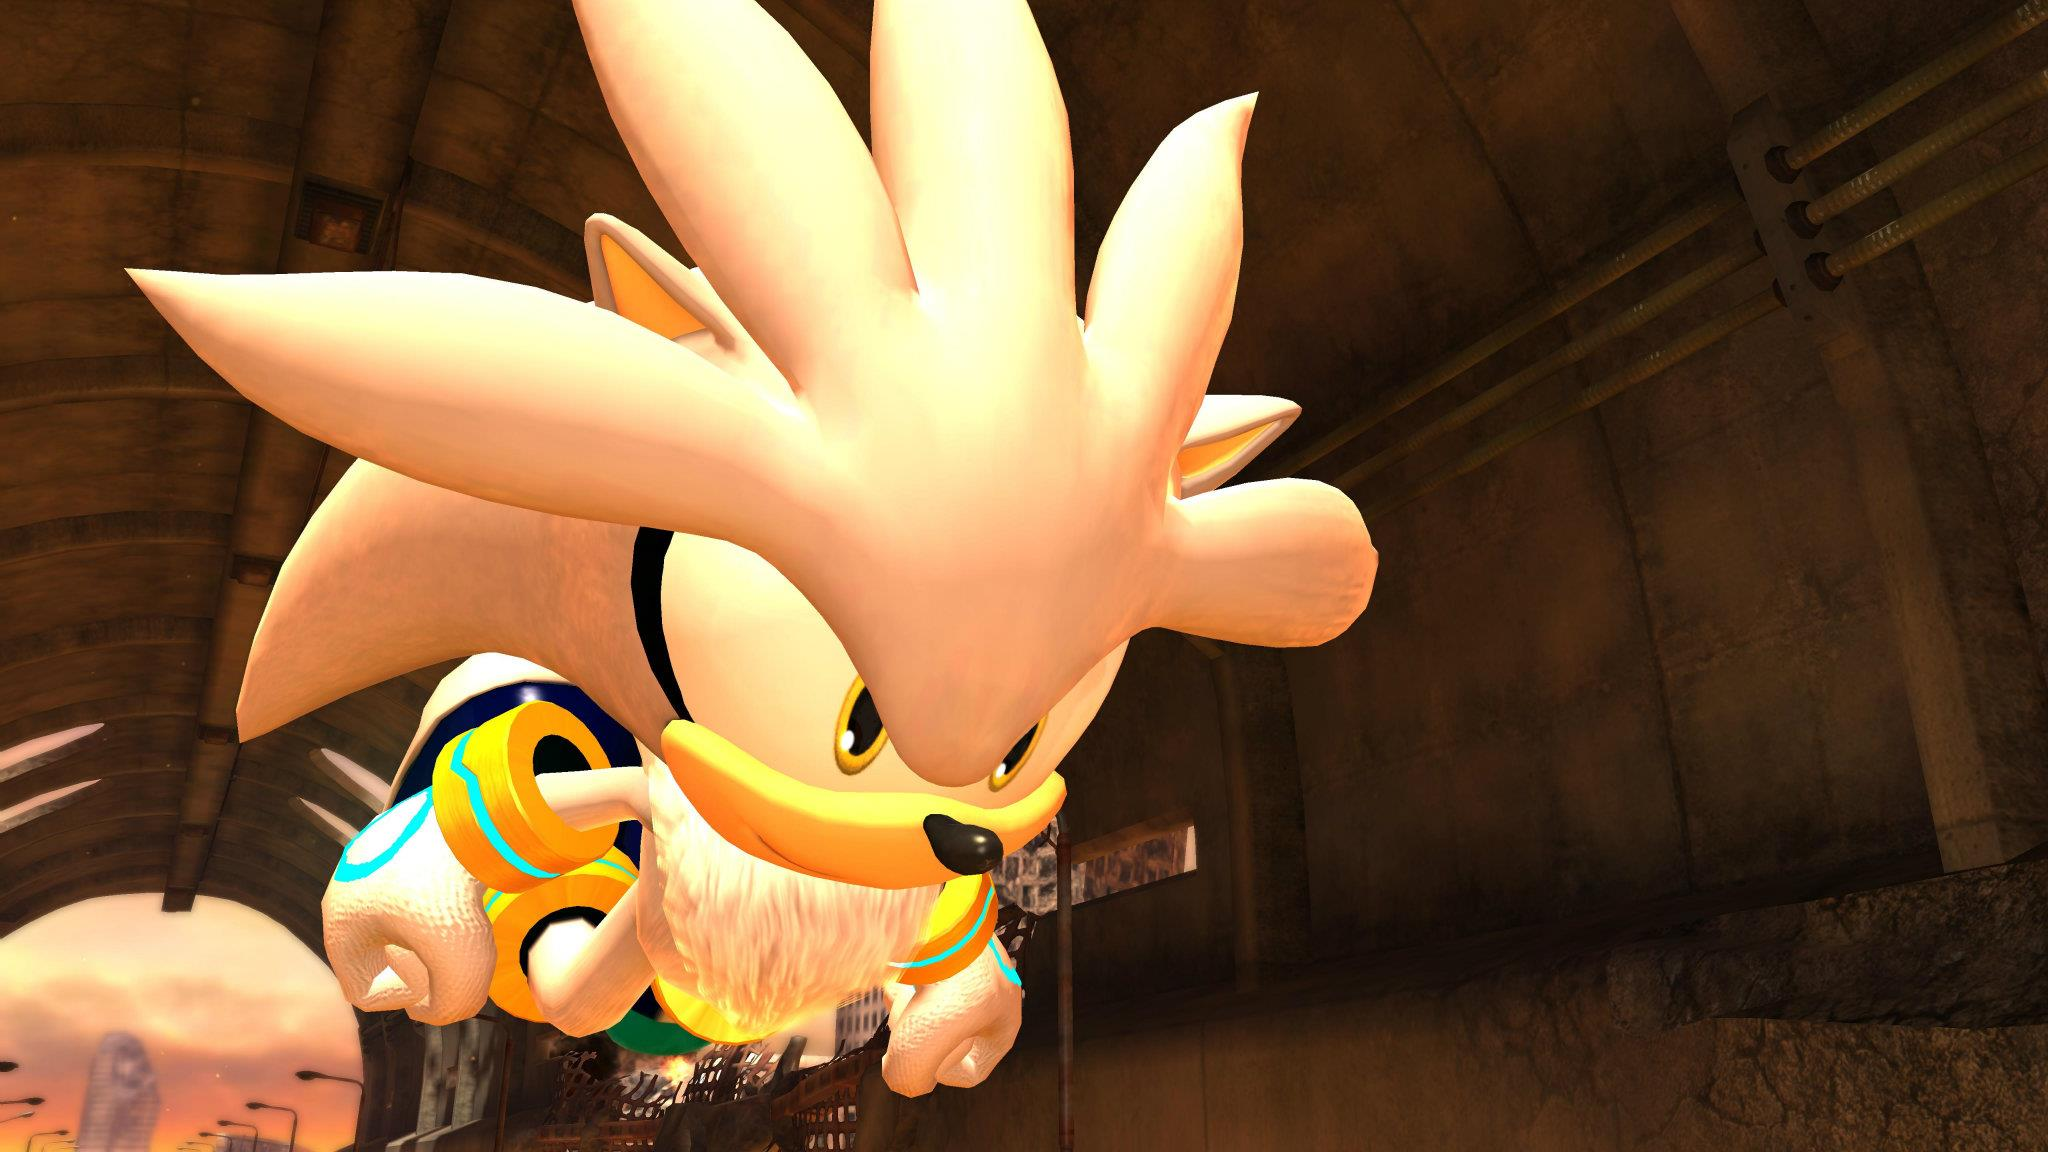 Silver is Sonic '06